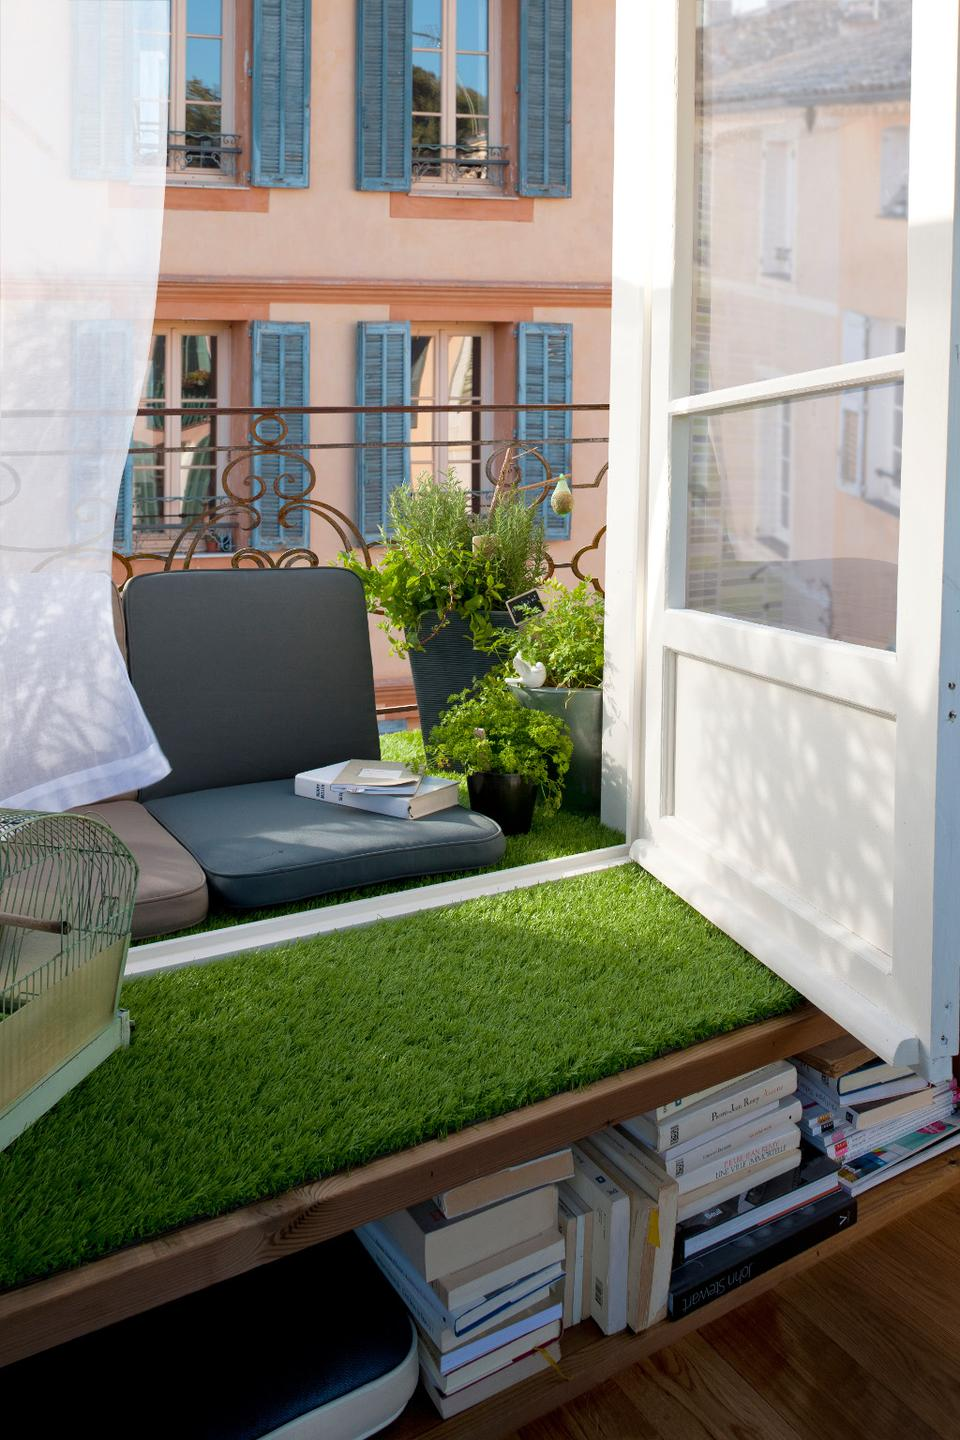 Am nager une terrasse design sans perdre de place for Amenagement petit jardin avec terrasse